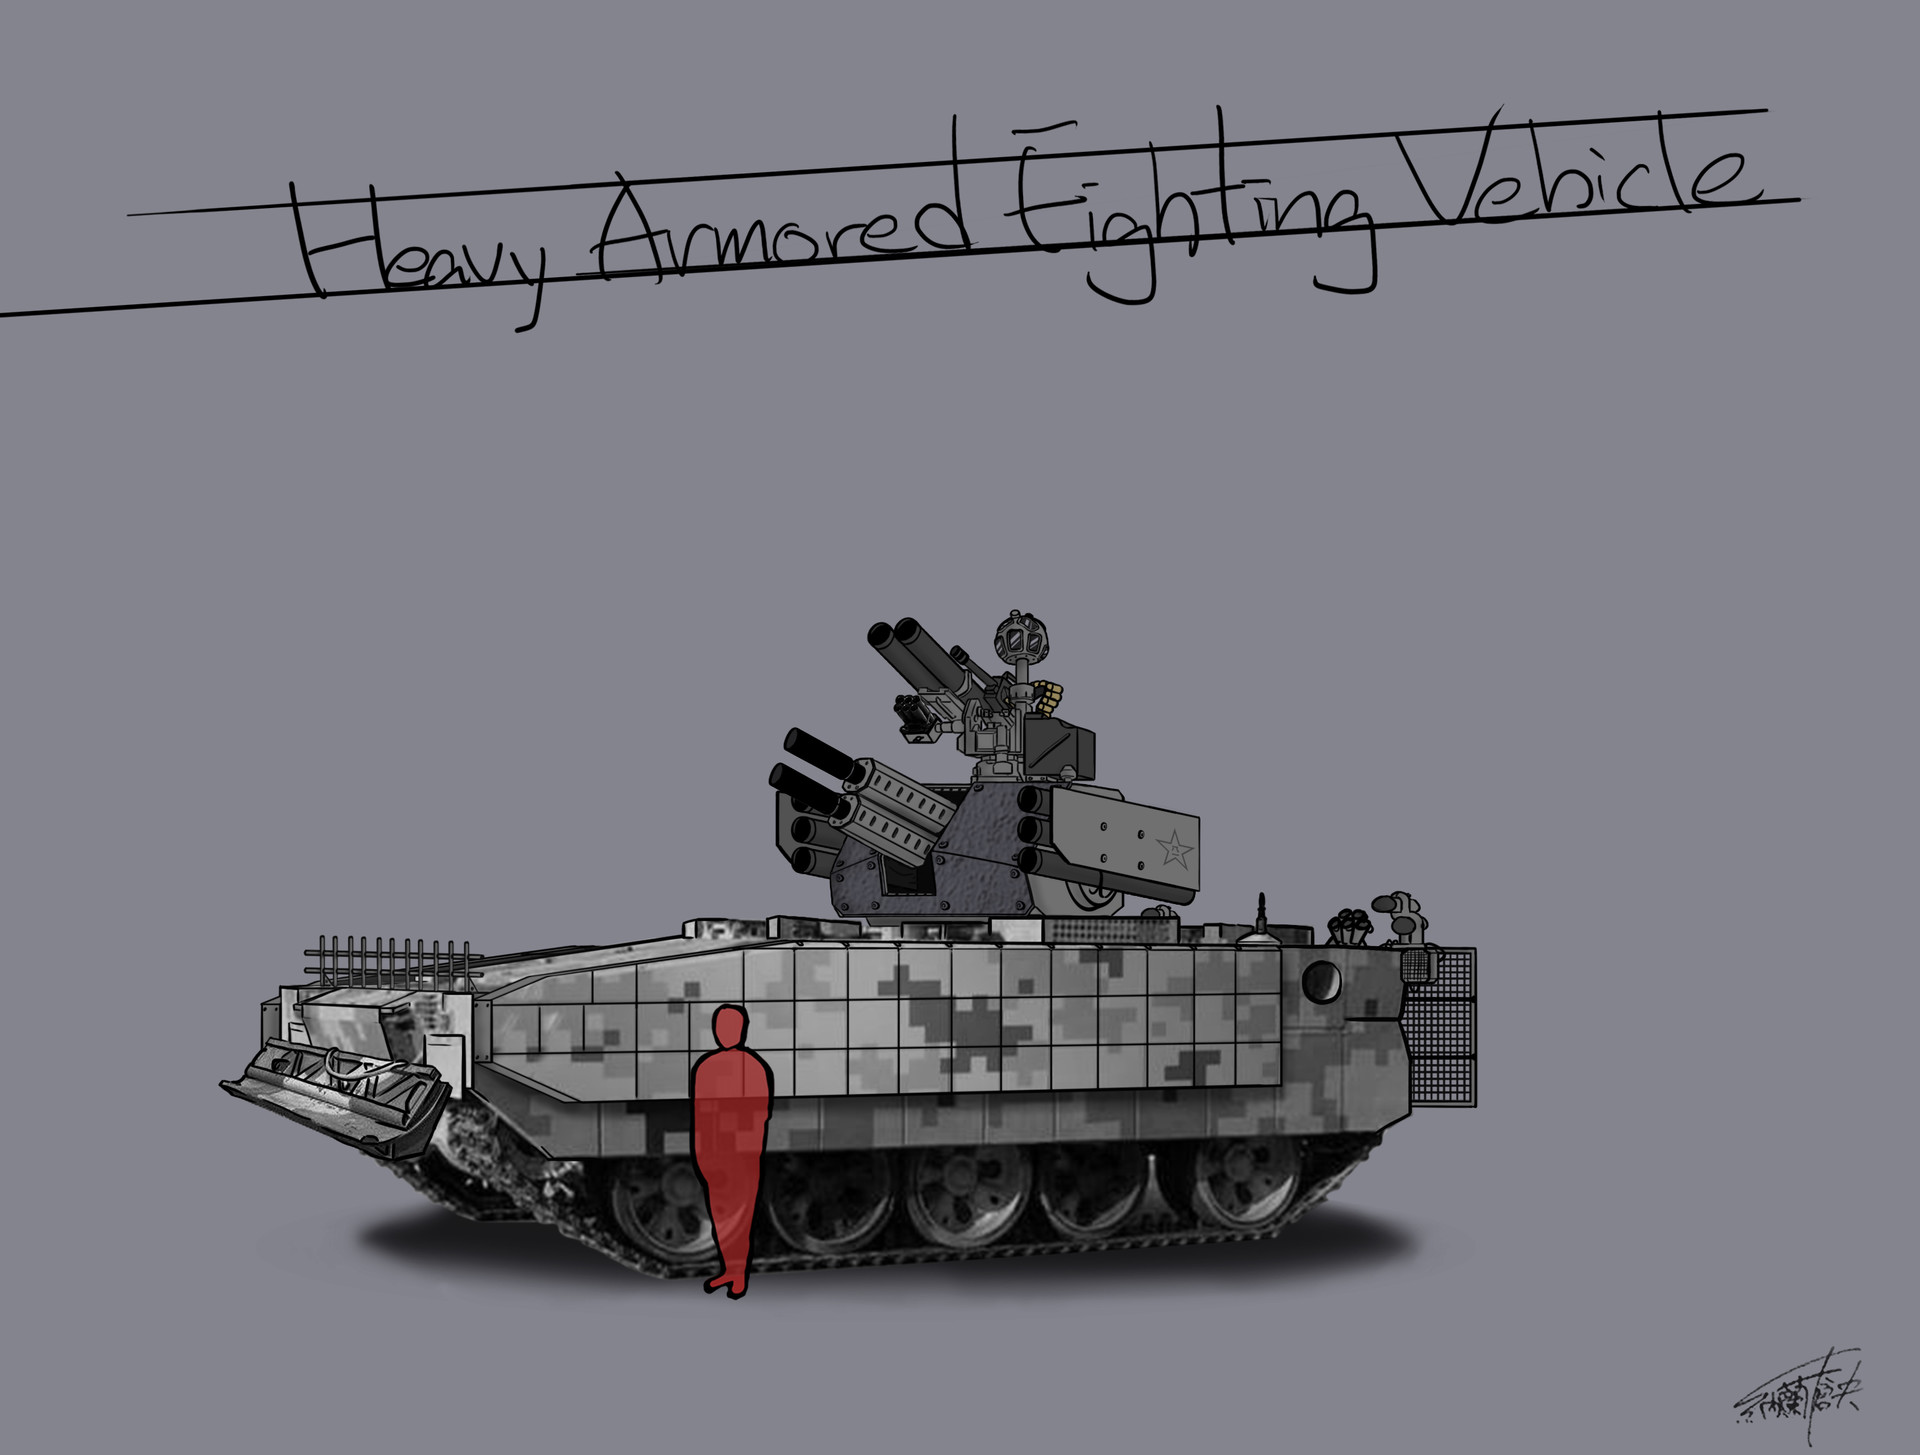 Heavy Armored Fighting Vehicle (Full-Armor)